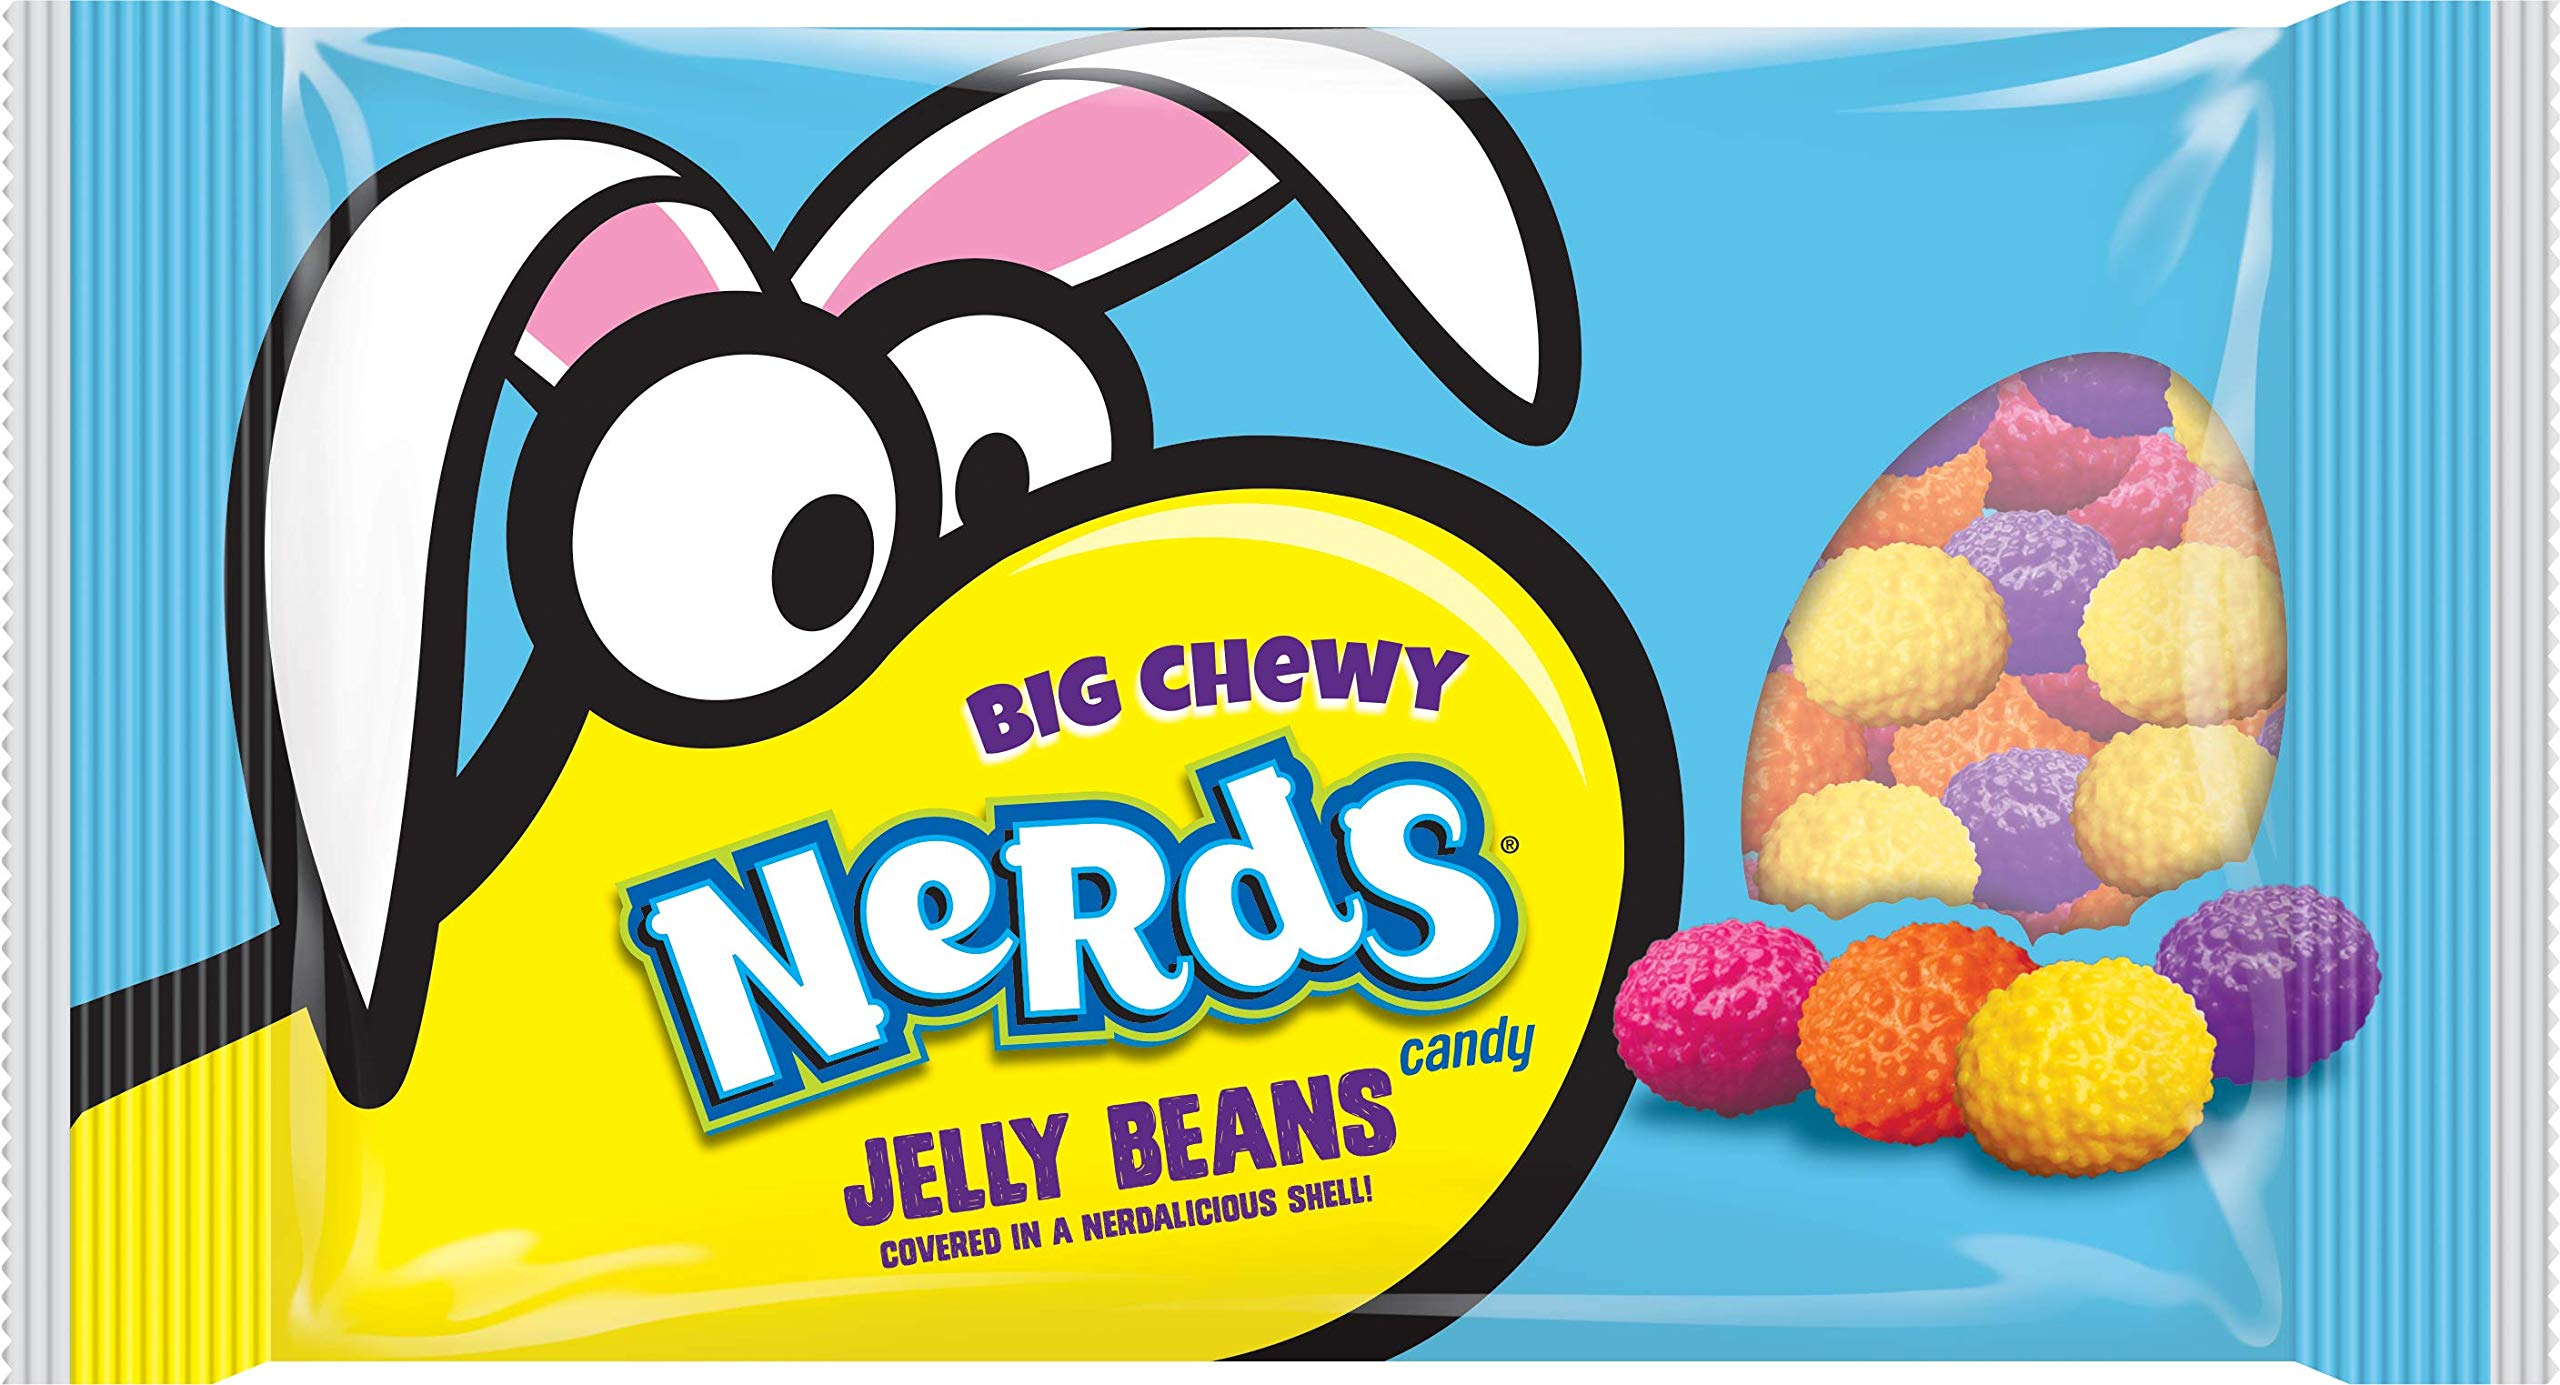 Wonka Nerds Jelly Beans Easter, 13.0-Ounce (Pack of 6)